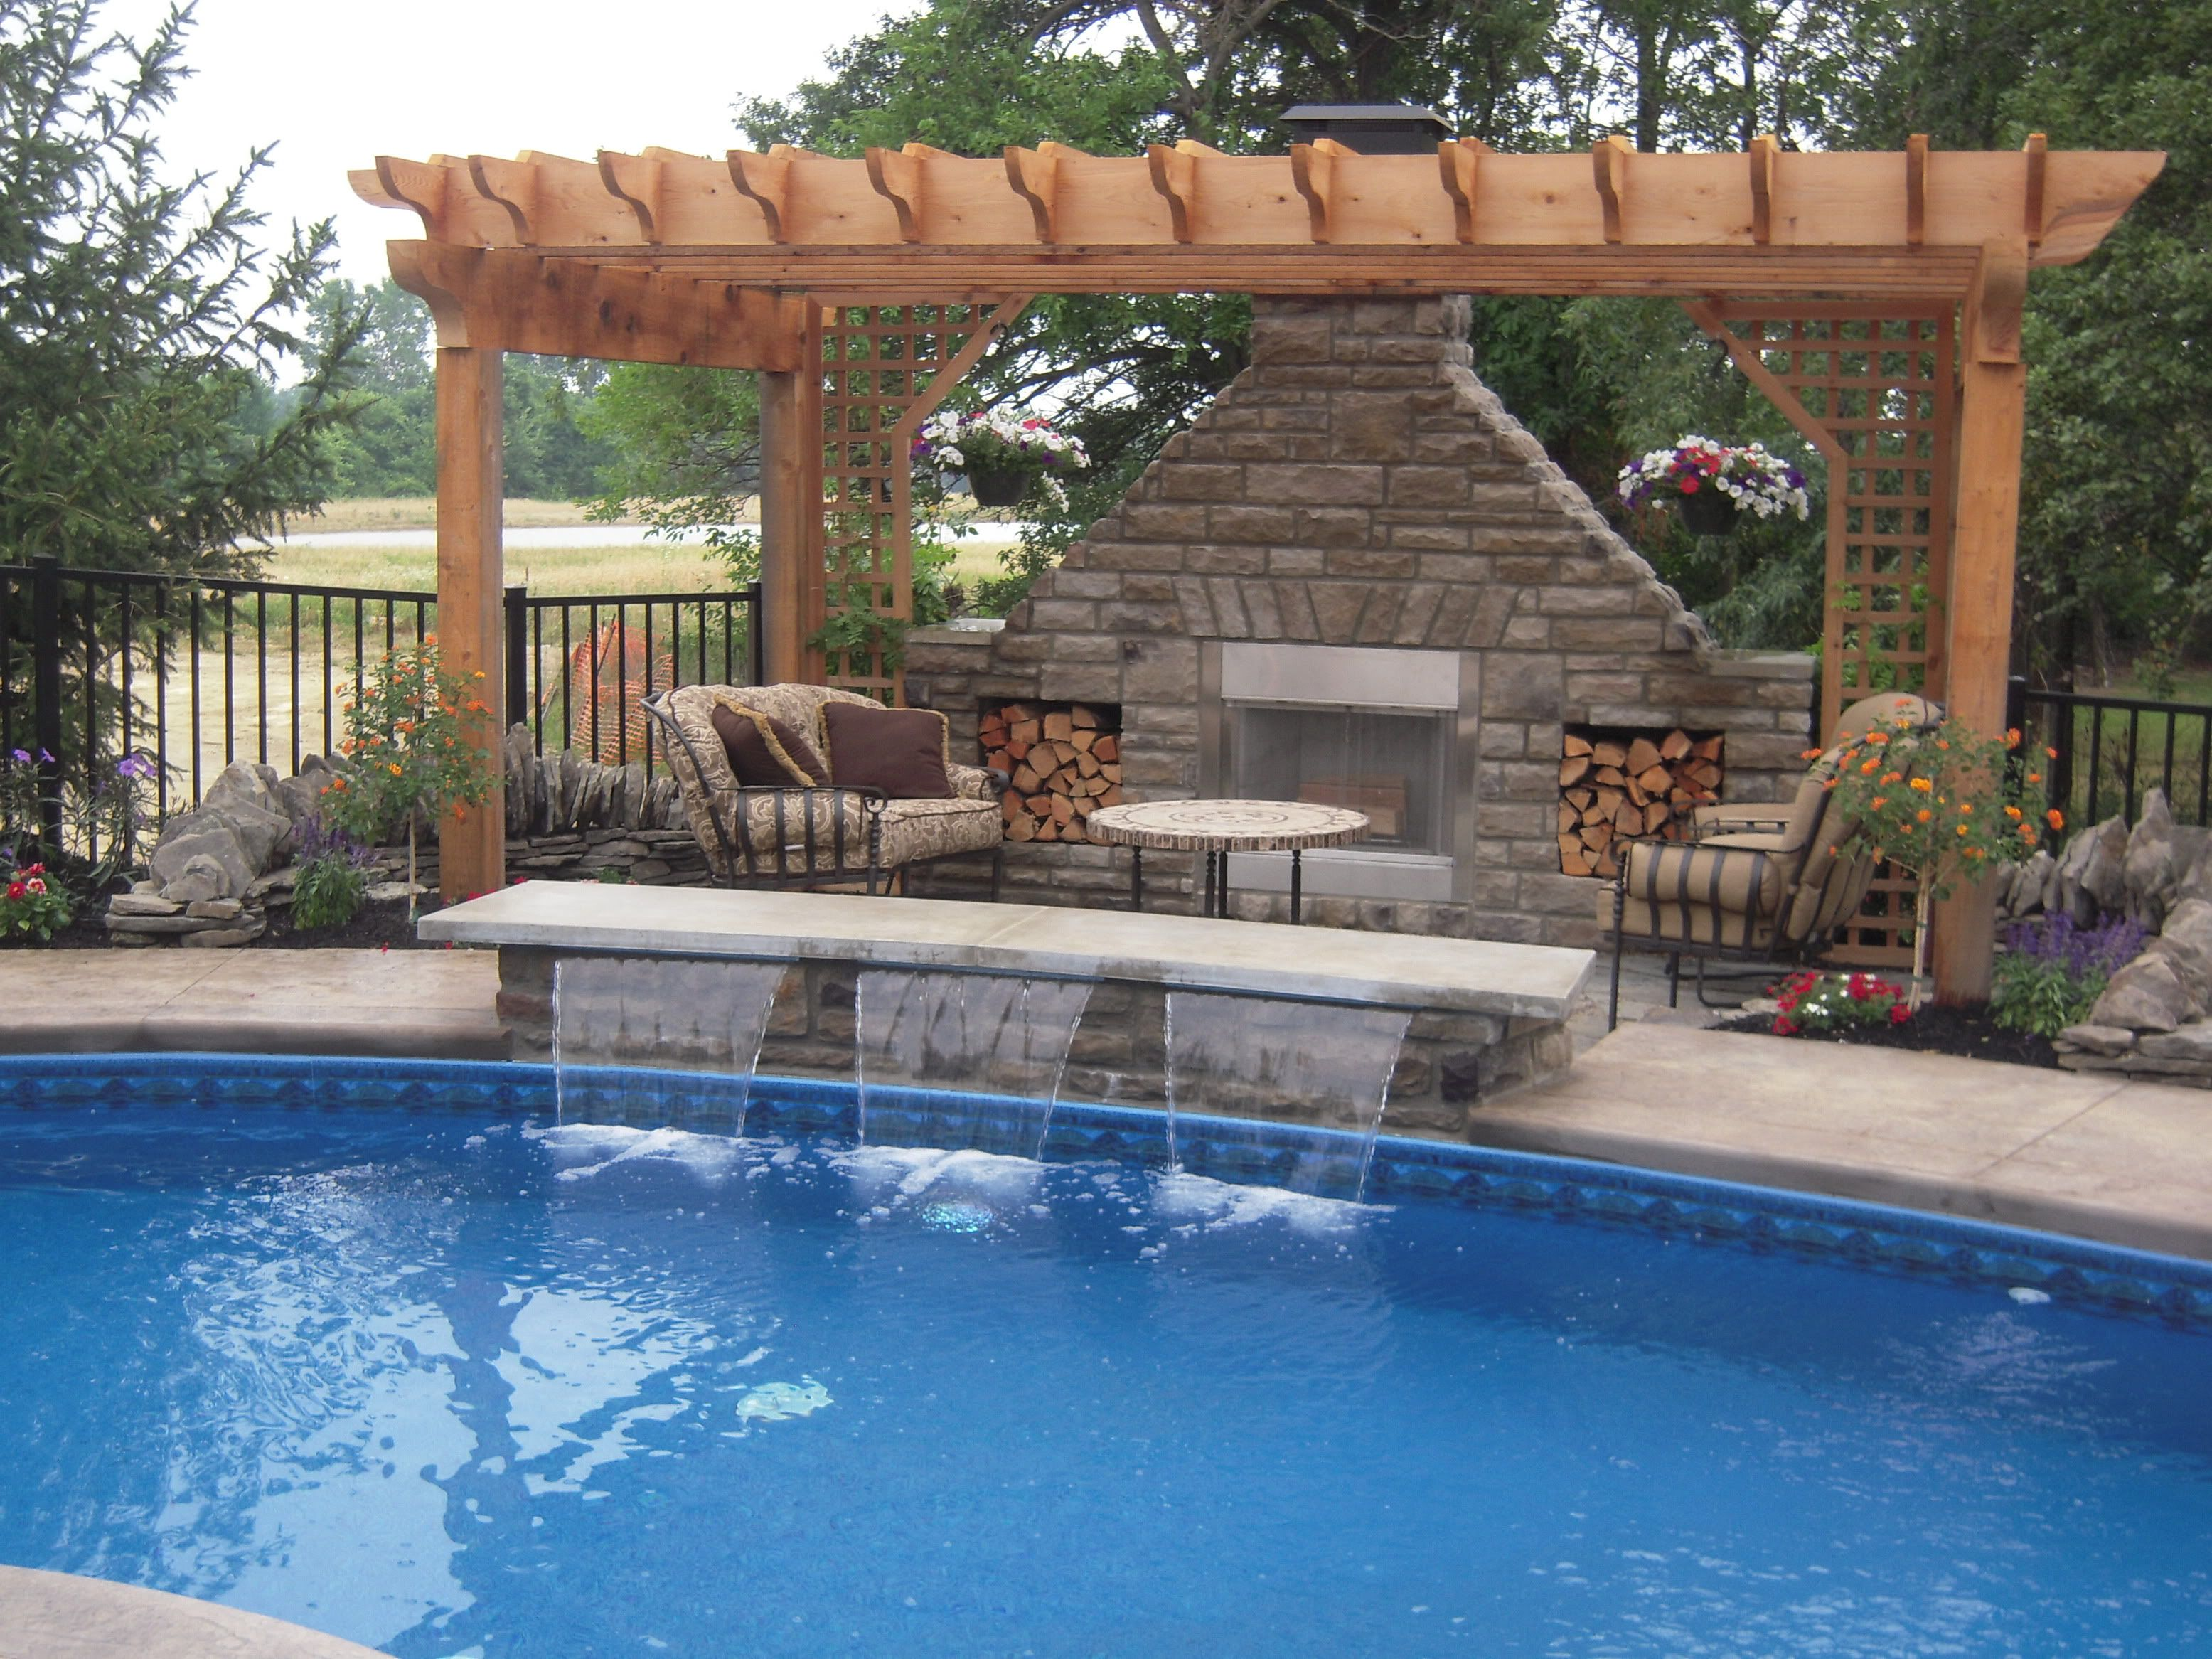 Swimming Pool With Waterfall For My Next Home Pinterest Swimming Pools Yards And Backyard